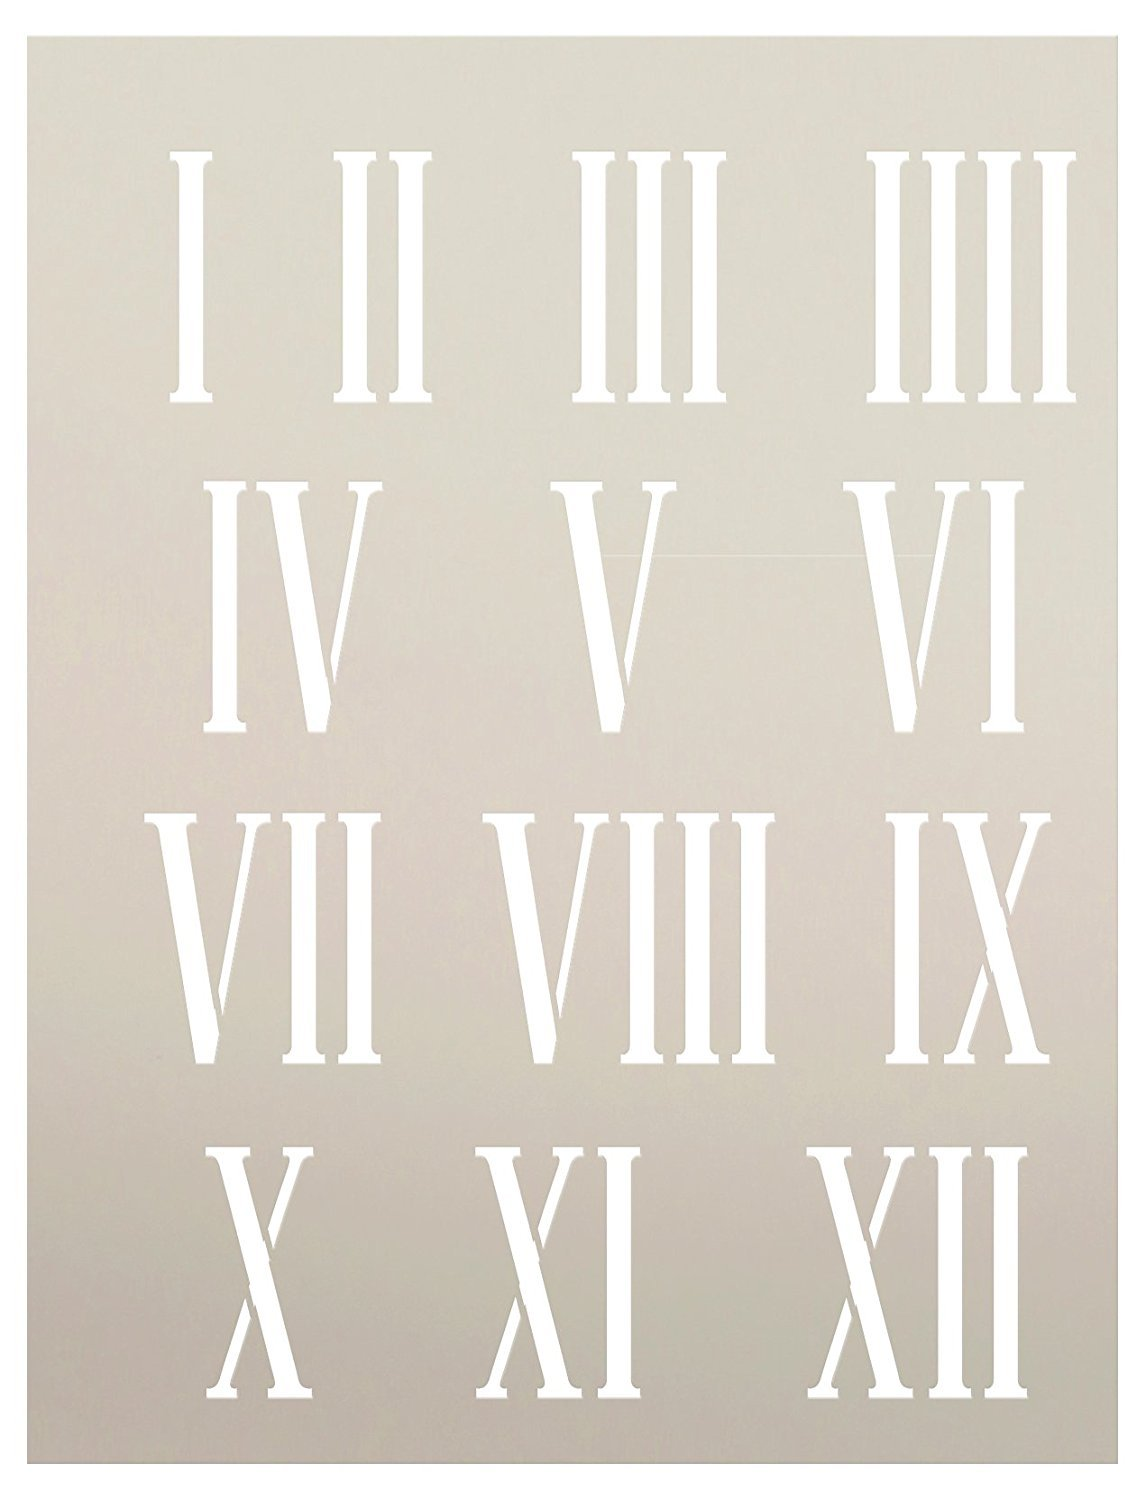 "Clock Numerals Stencil by StudioR12 | Roman Numbers Elements - Reusable Mylar Template | Painting, Chalk, Mixed Media | Use for Journaling, DIY Home Decor - STCL185 - SELECT SIZE (7.5"" x 10"")"